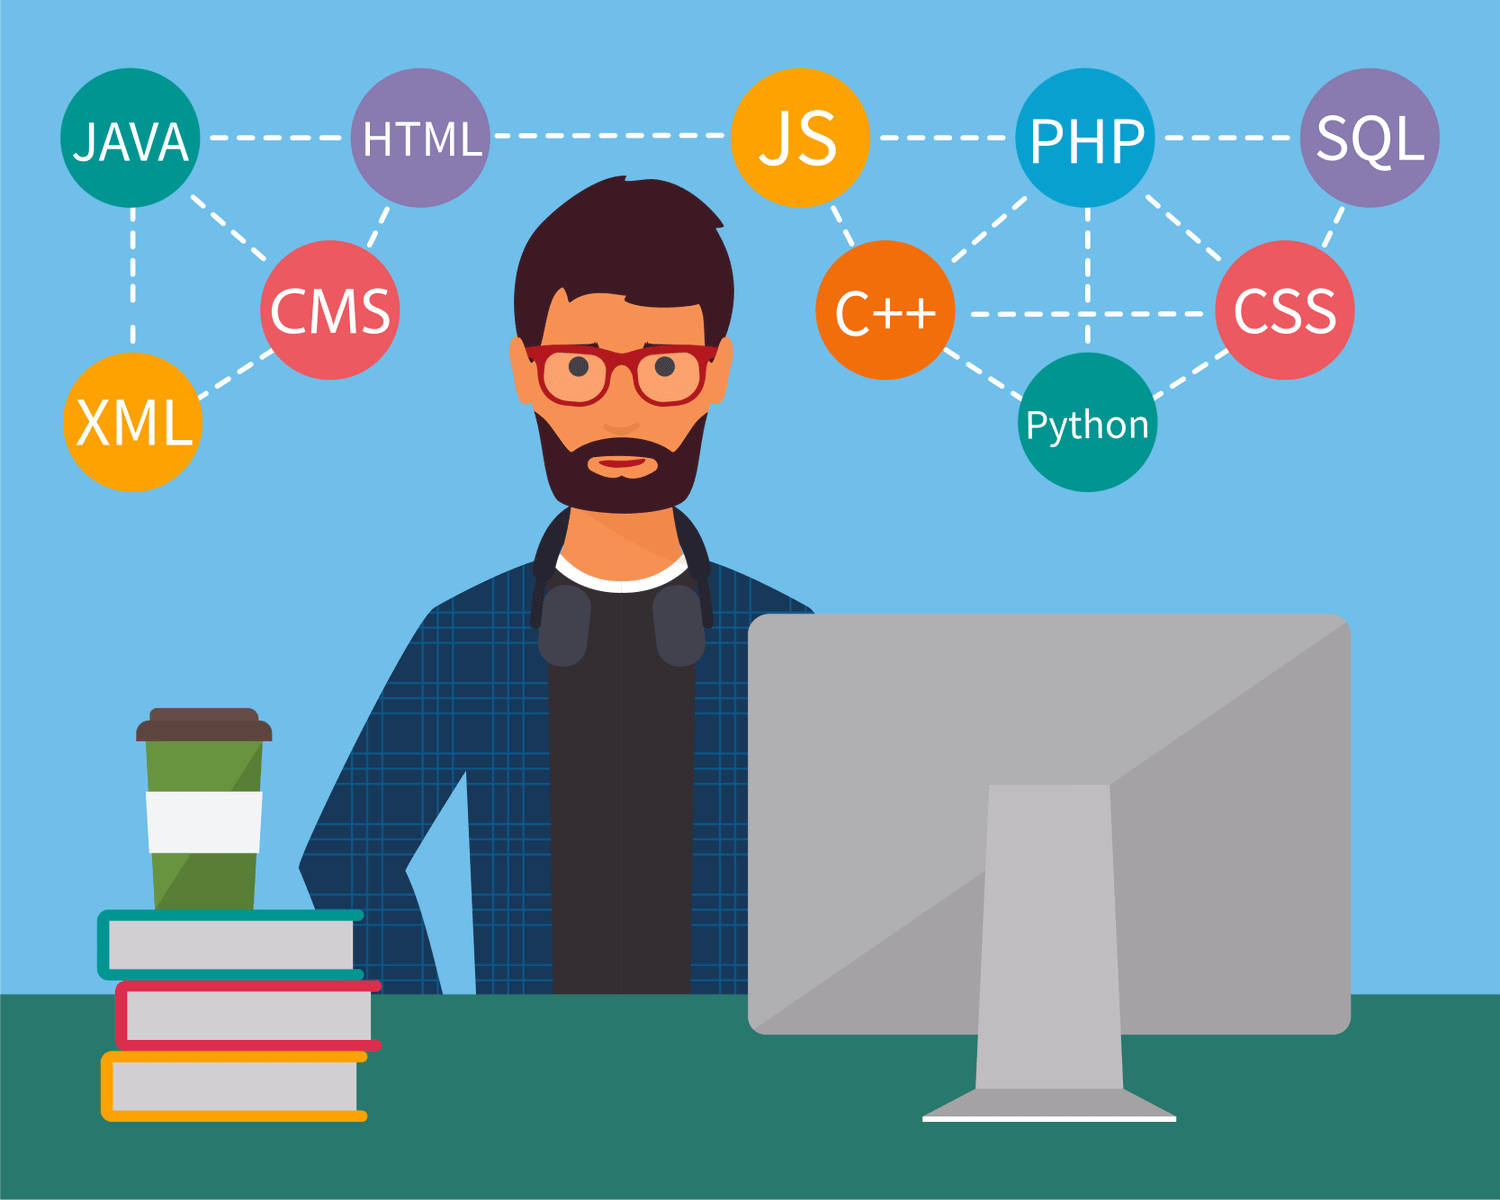 Top 5 programming languages featured